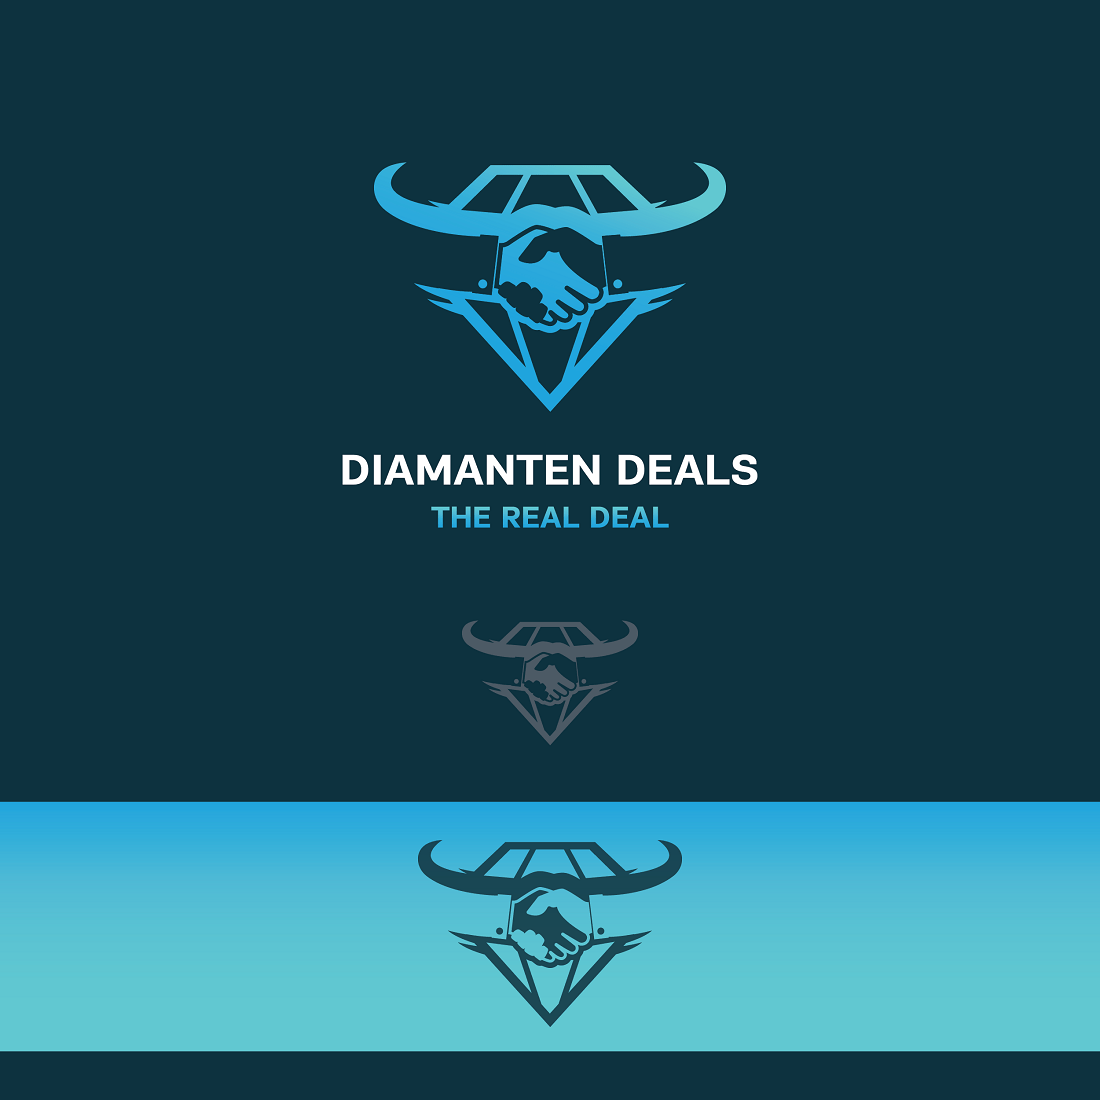 D Deals Modern Professional Jewelry Store Logo Design For Diamanten